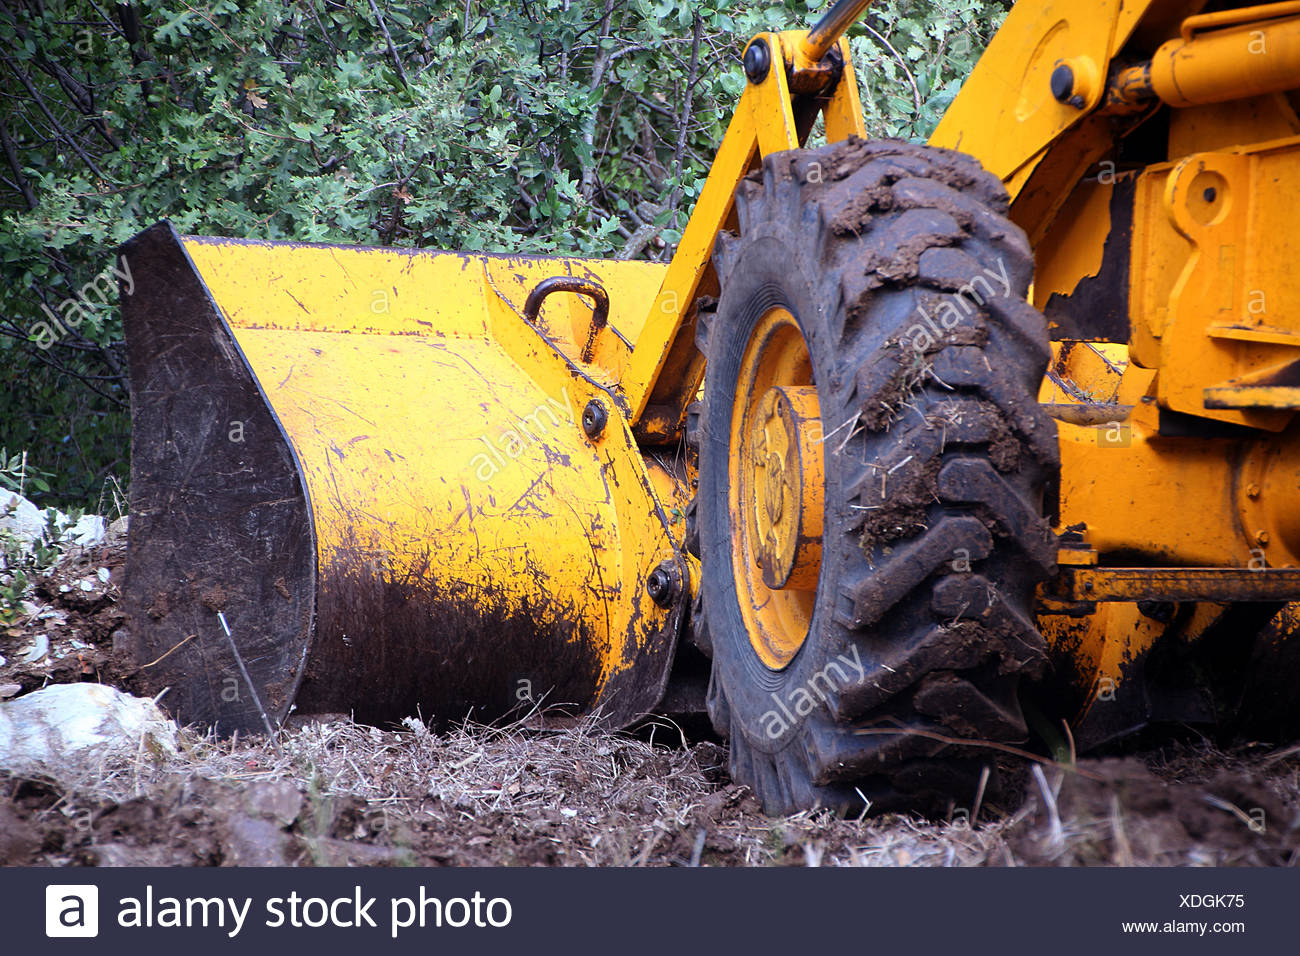 Mechanical digger excavating soil - Stock Image